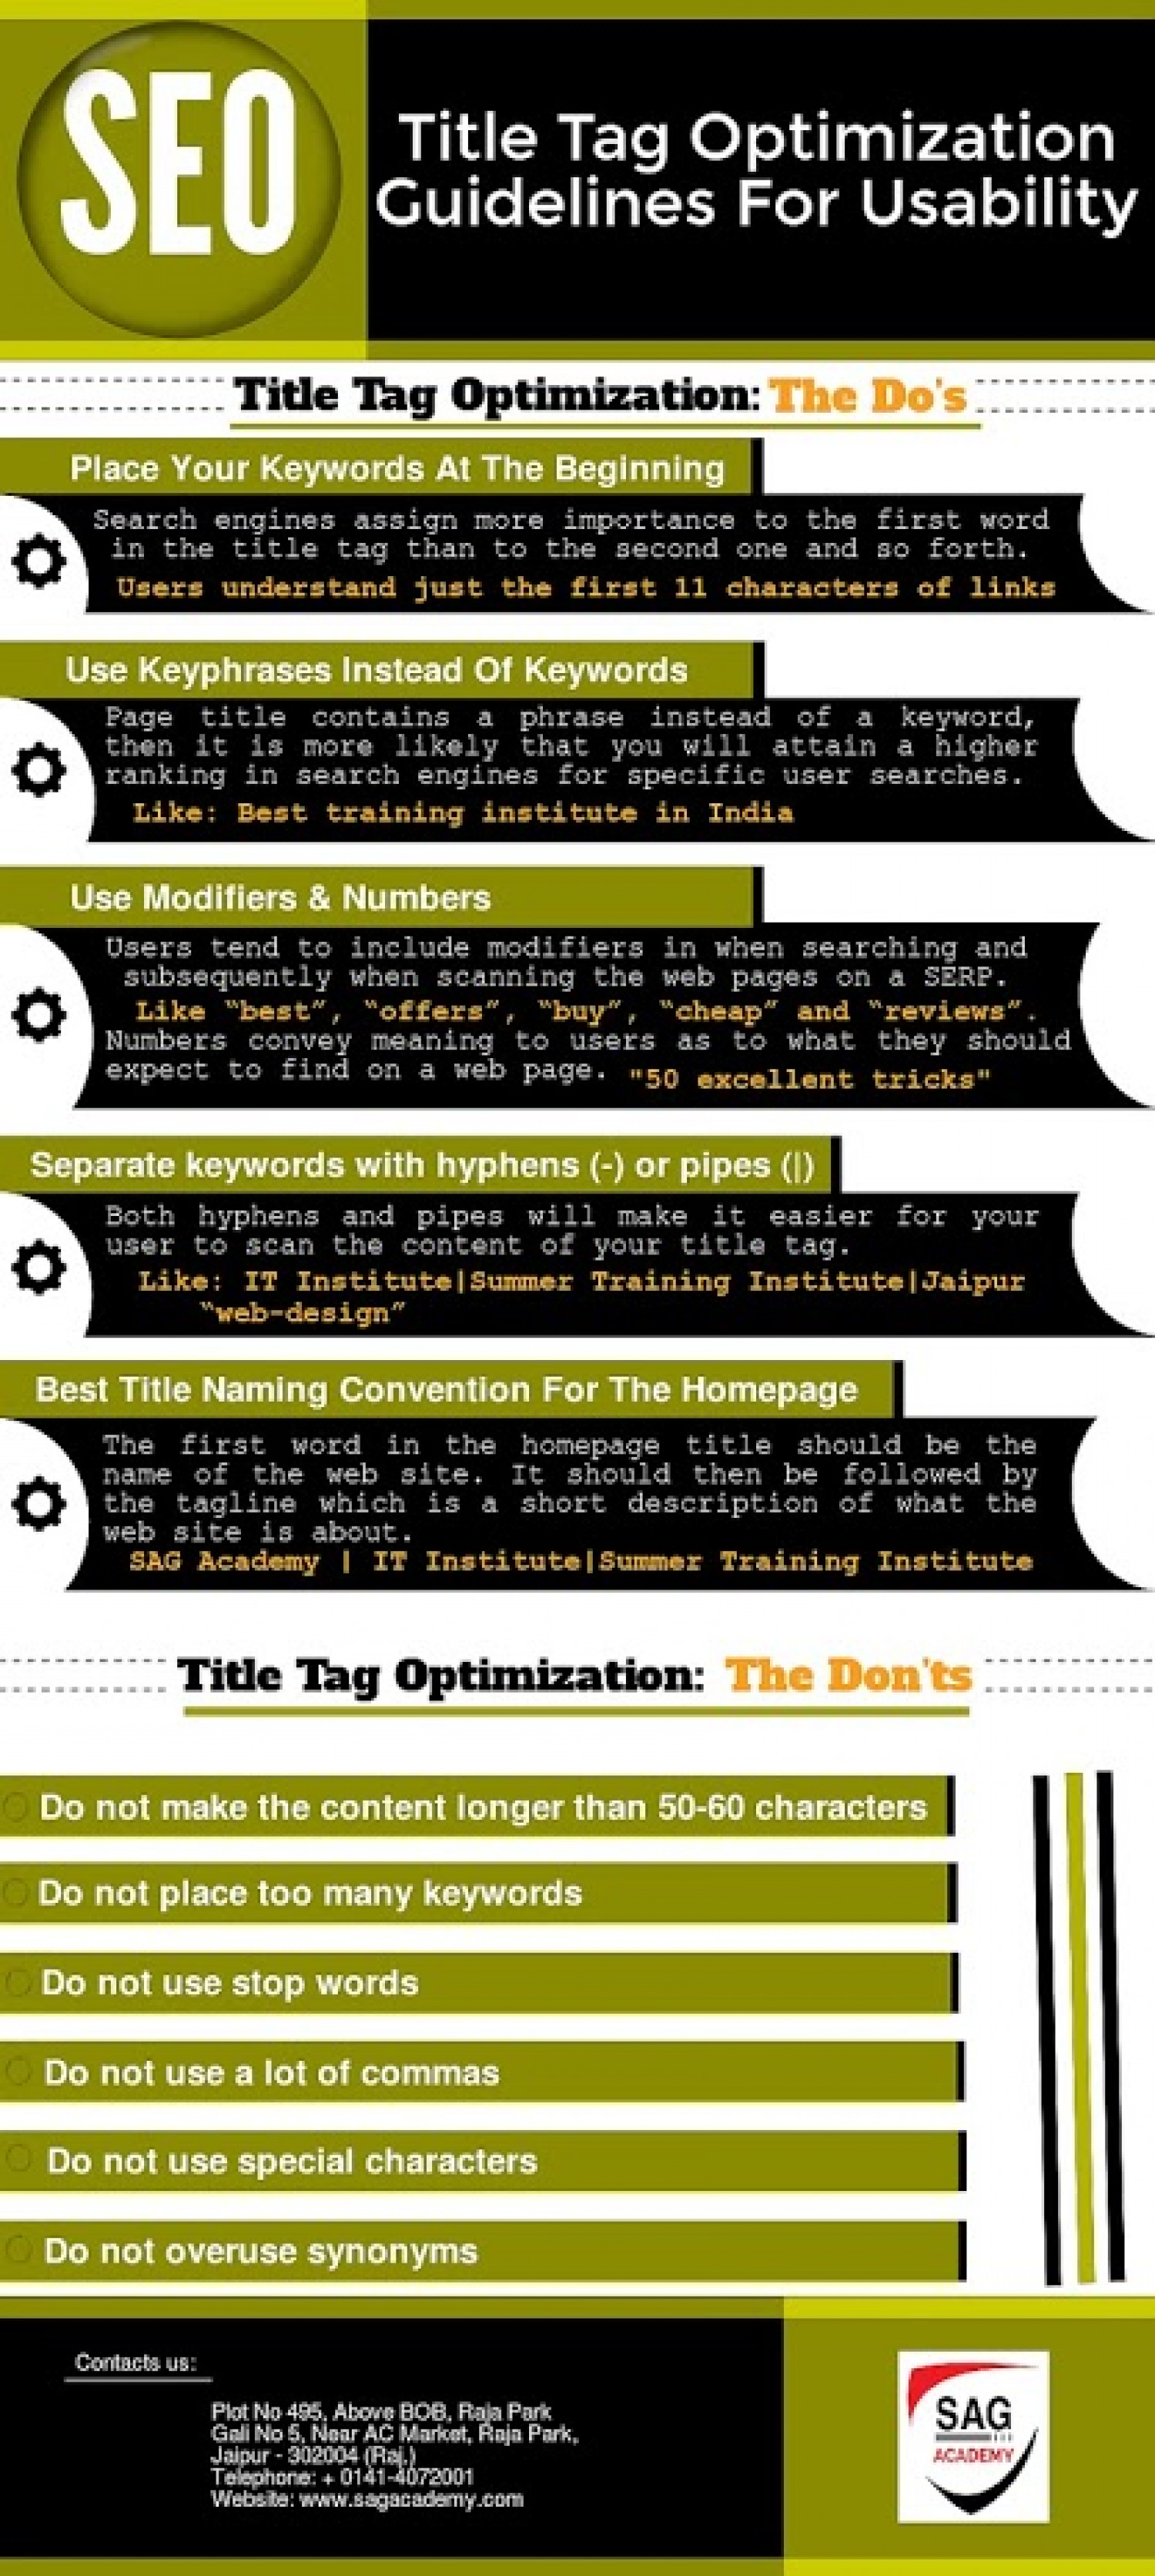 OPTIMIZE TITLE TAG IN BETTER WAY Infographic